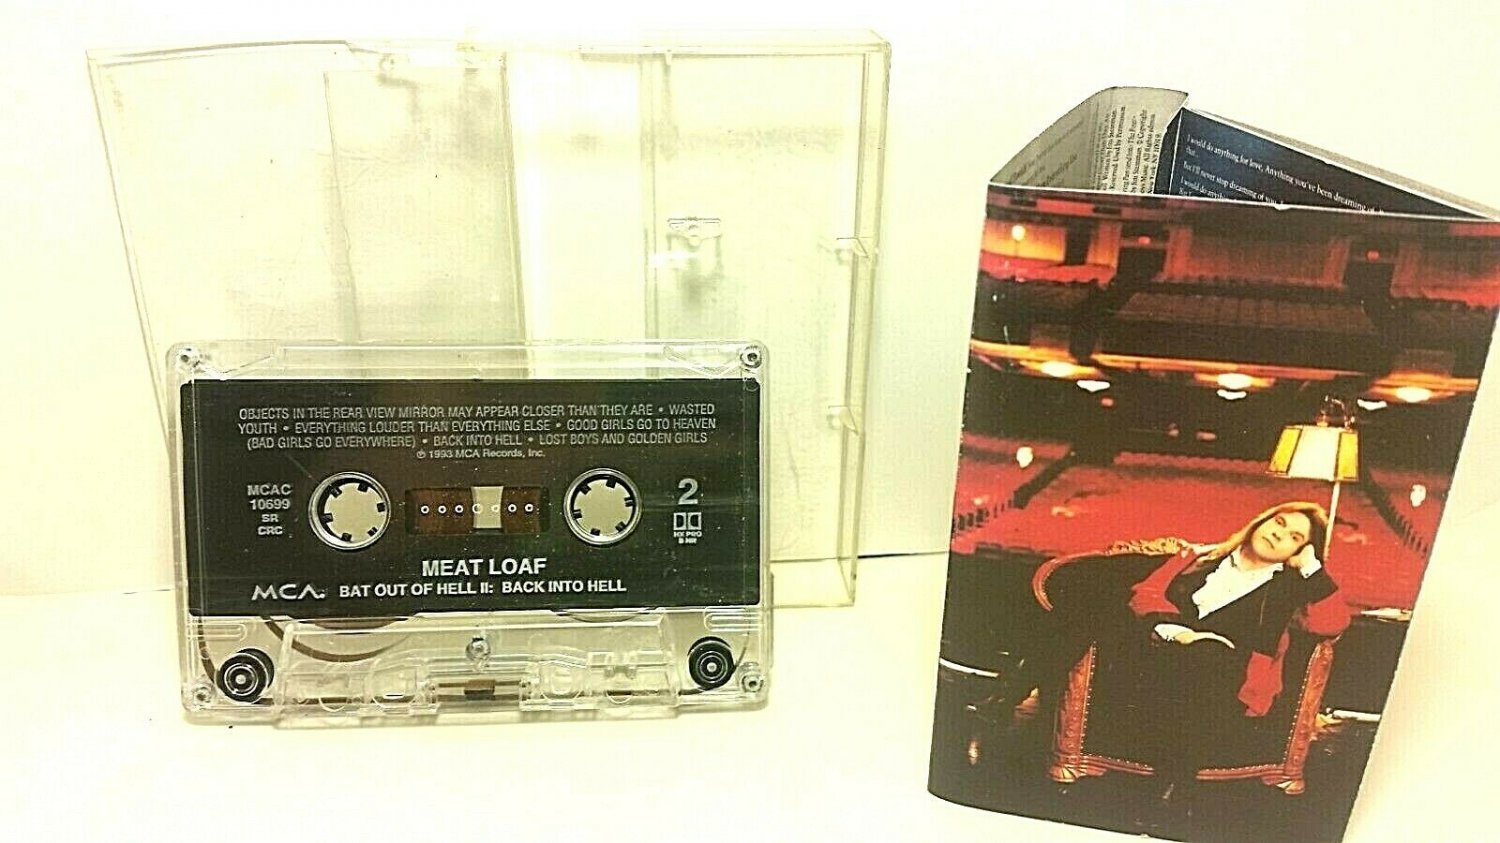 Meat Loaf - Bat Out Of Hell II: Back Into Hell Cassette Tape